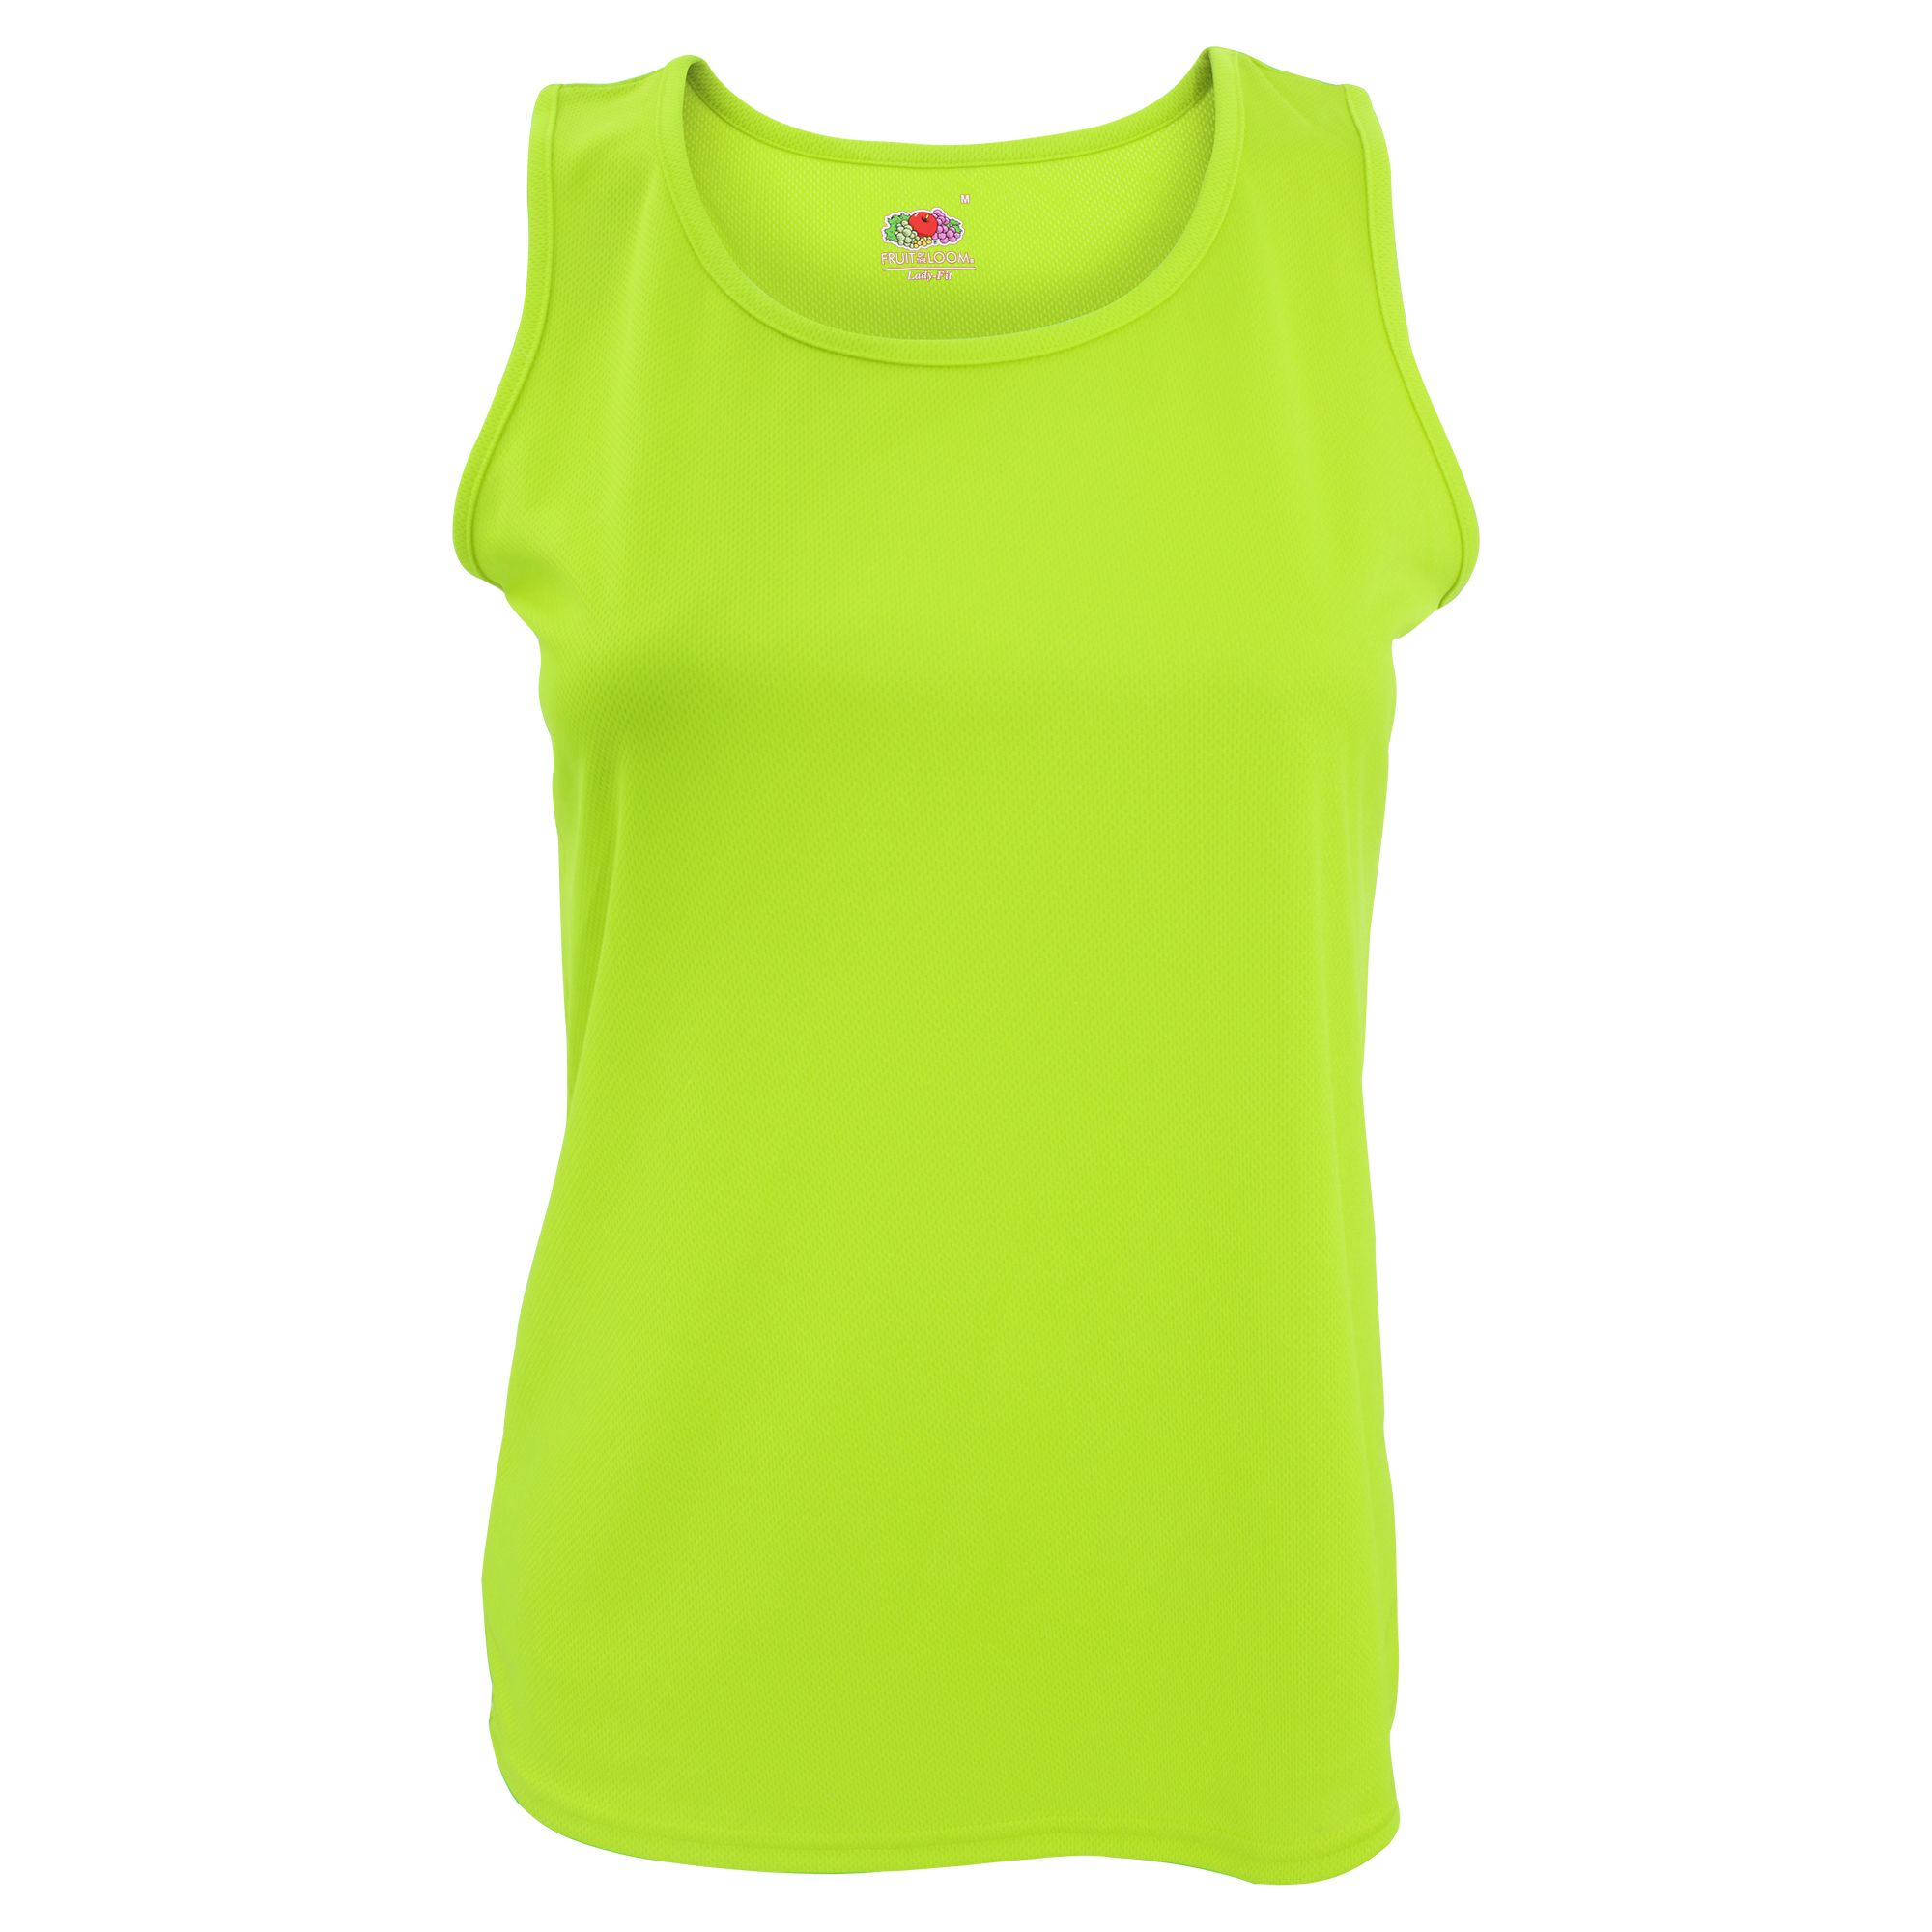 Fruit Of The Loom Womens/Ladies Sleeveless Lady-Fit Performance Vest Top